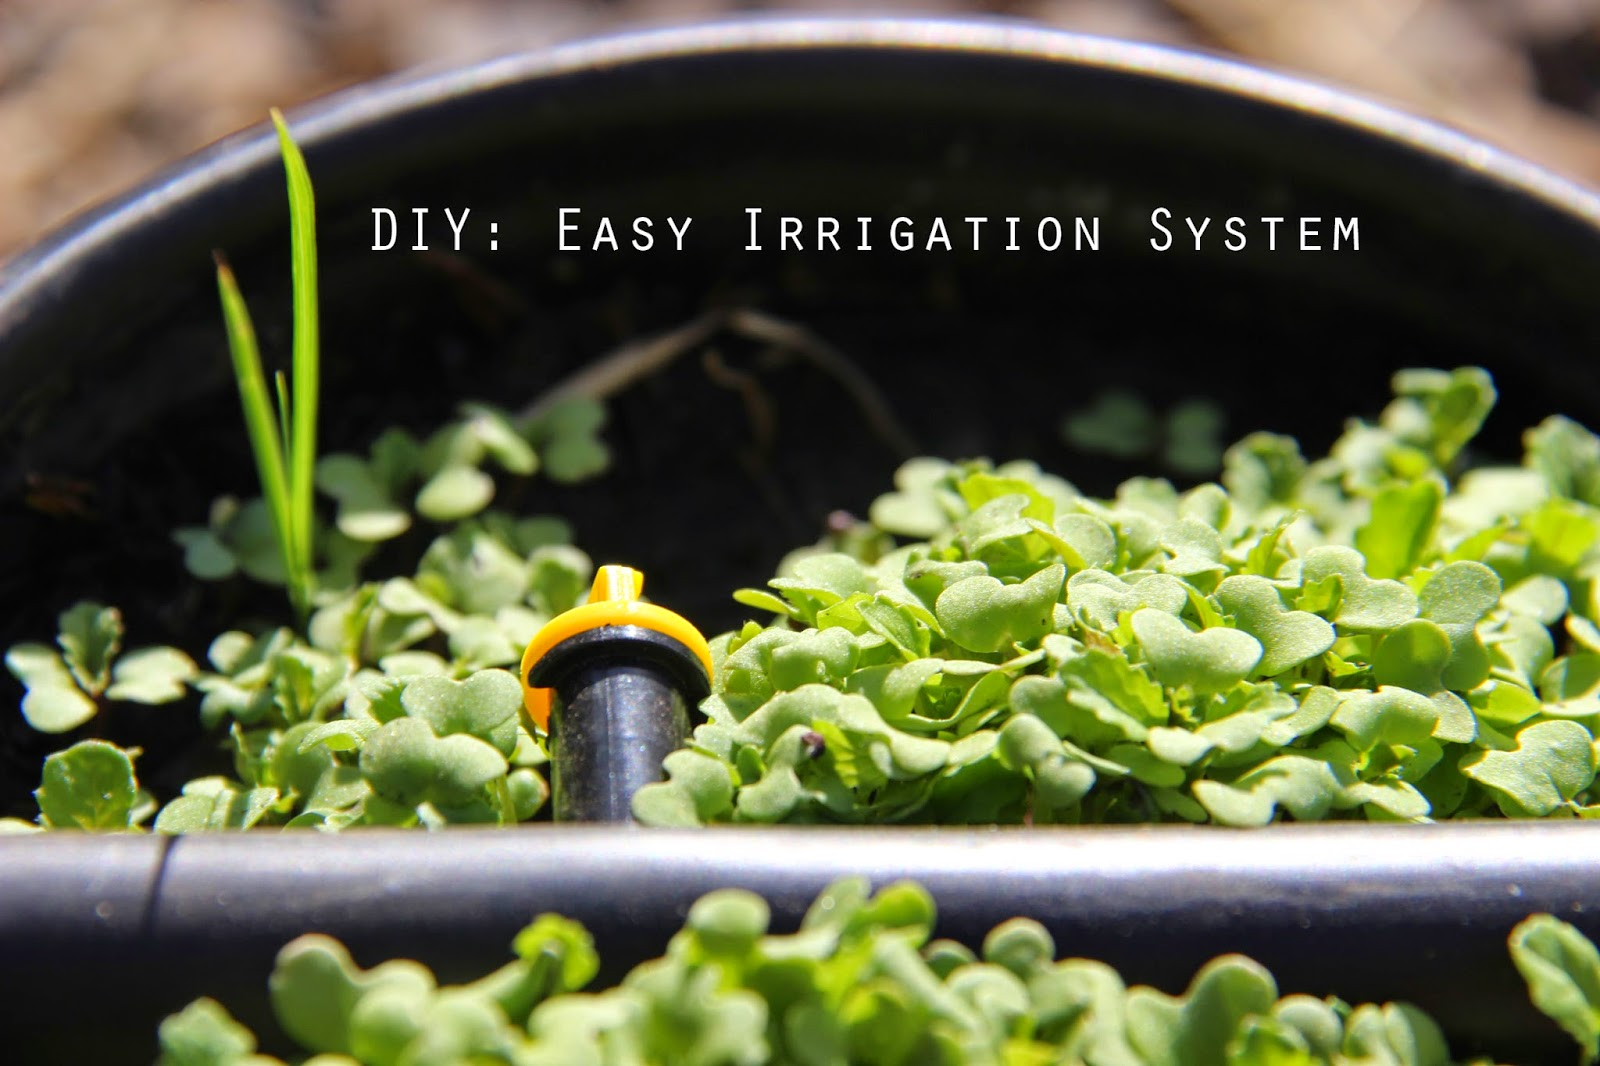 My first garden diy easy and inexpensively a drip irrigation system - Diy drip irrigation systems ...